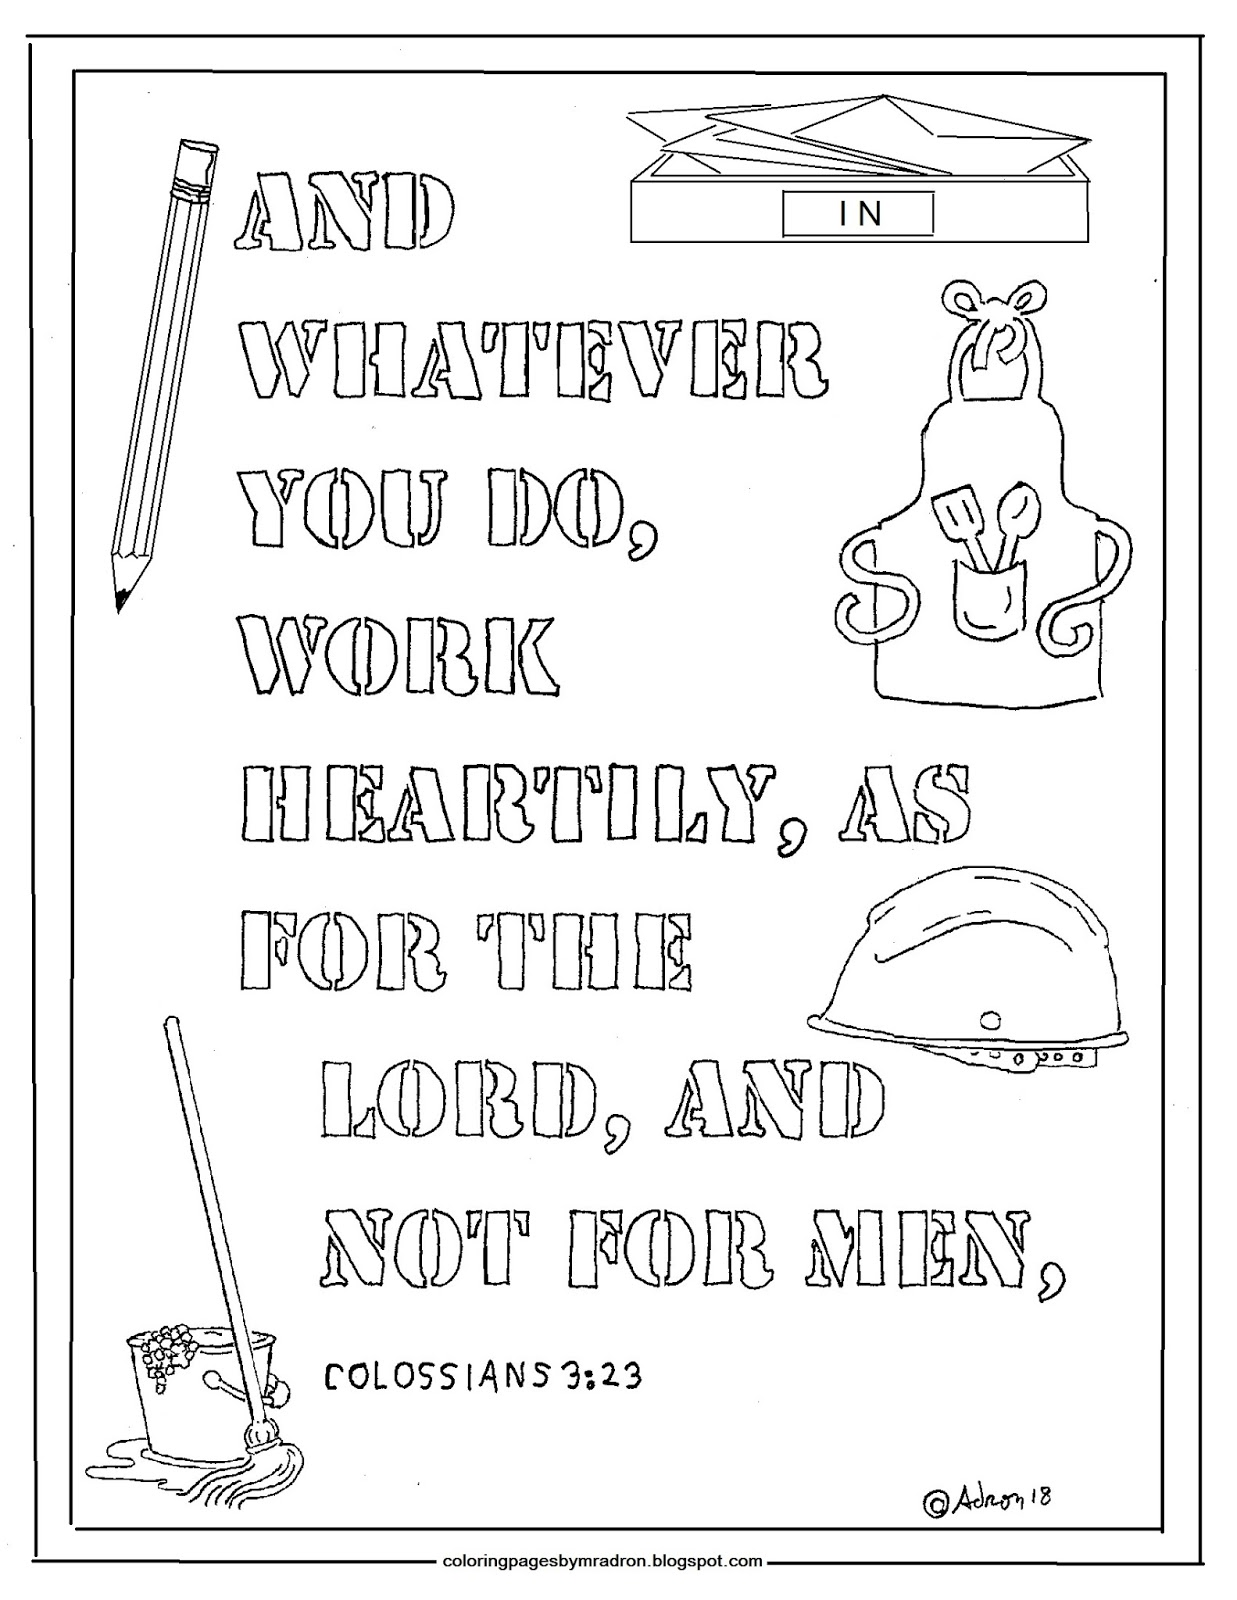 Coloring Pages For Kids By Mr Adron Colossians 3 23 Print And Color Page Work Heartily As For The Lord